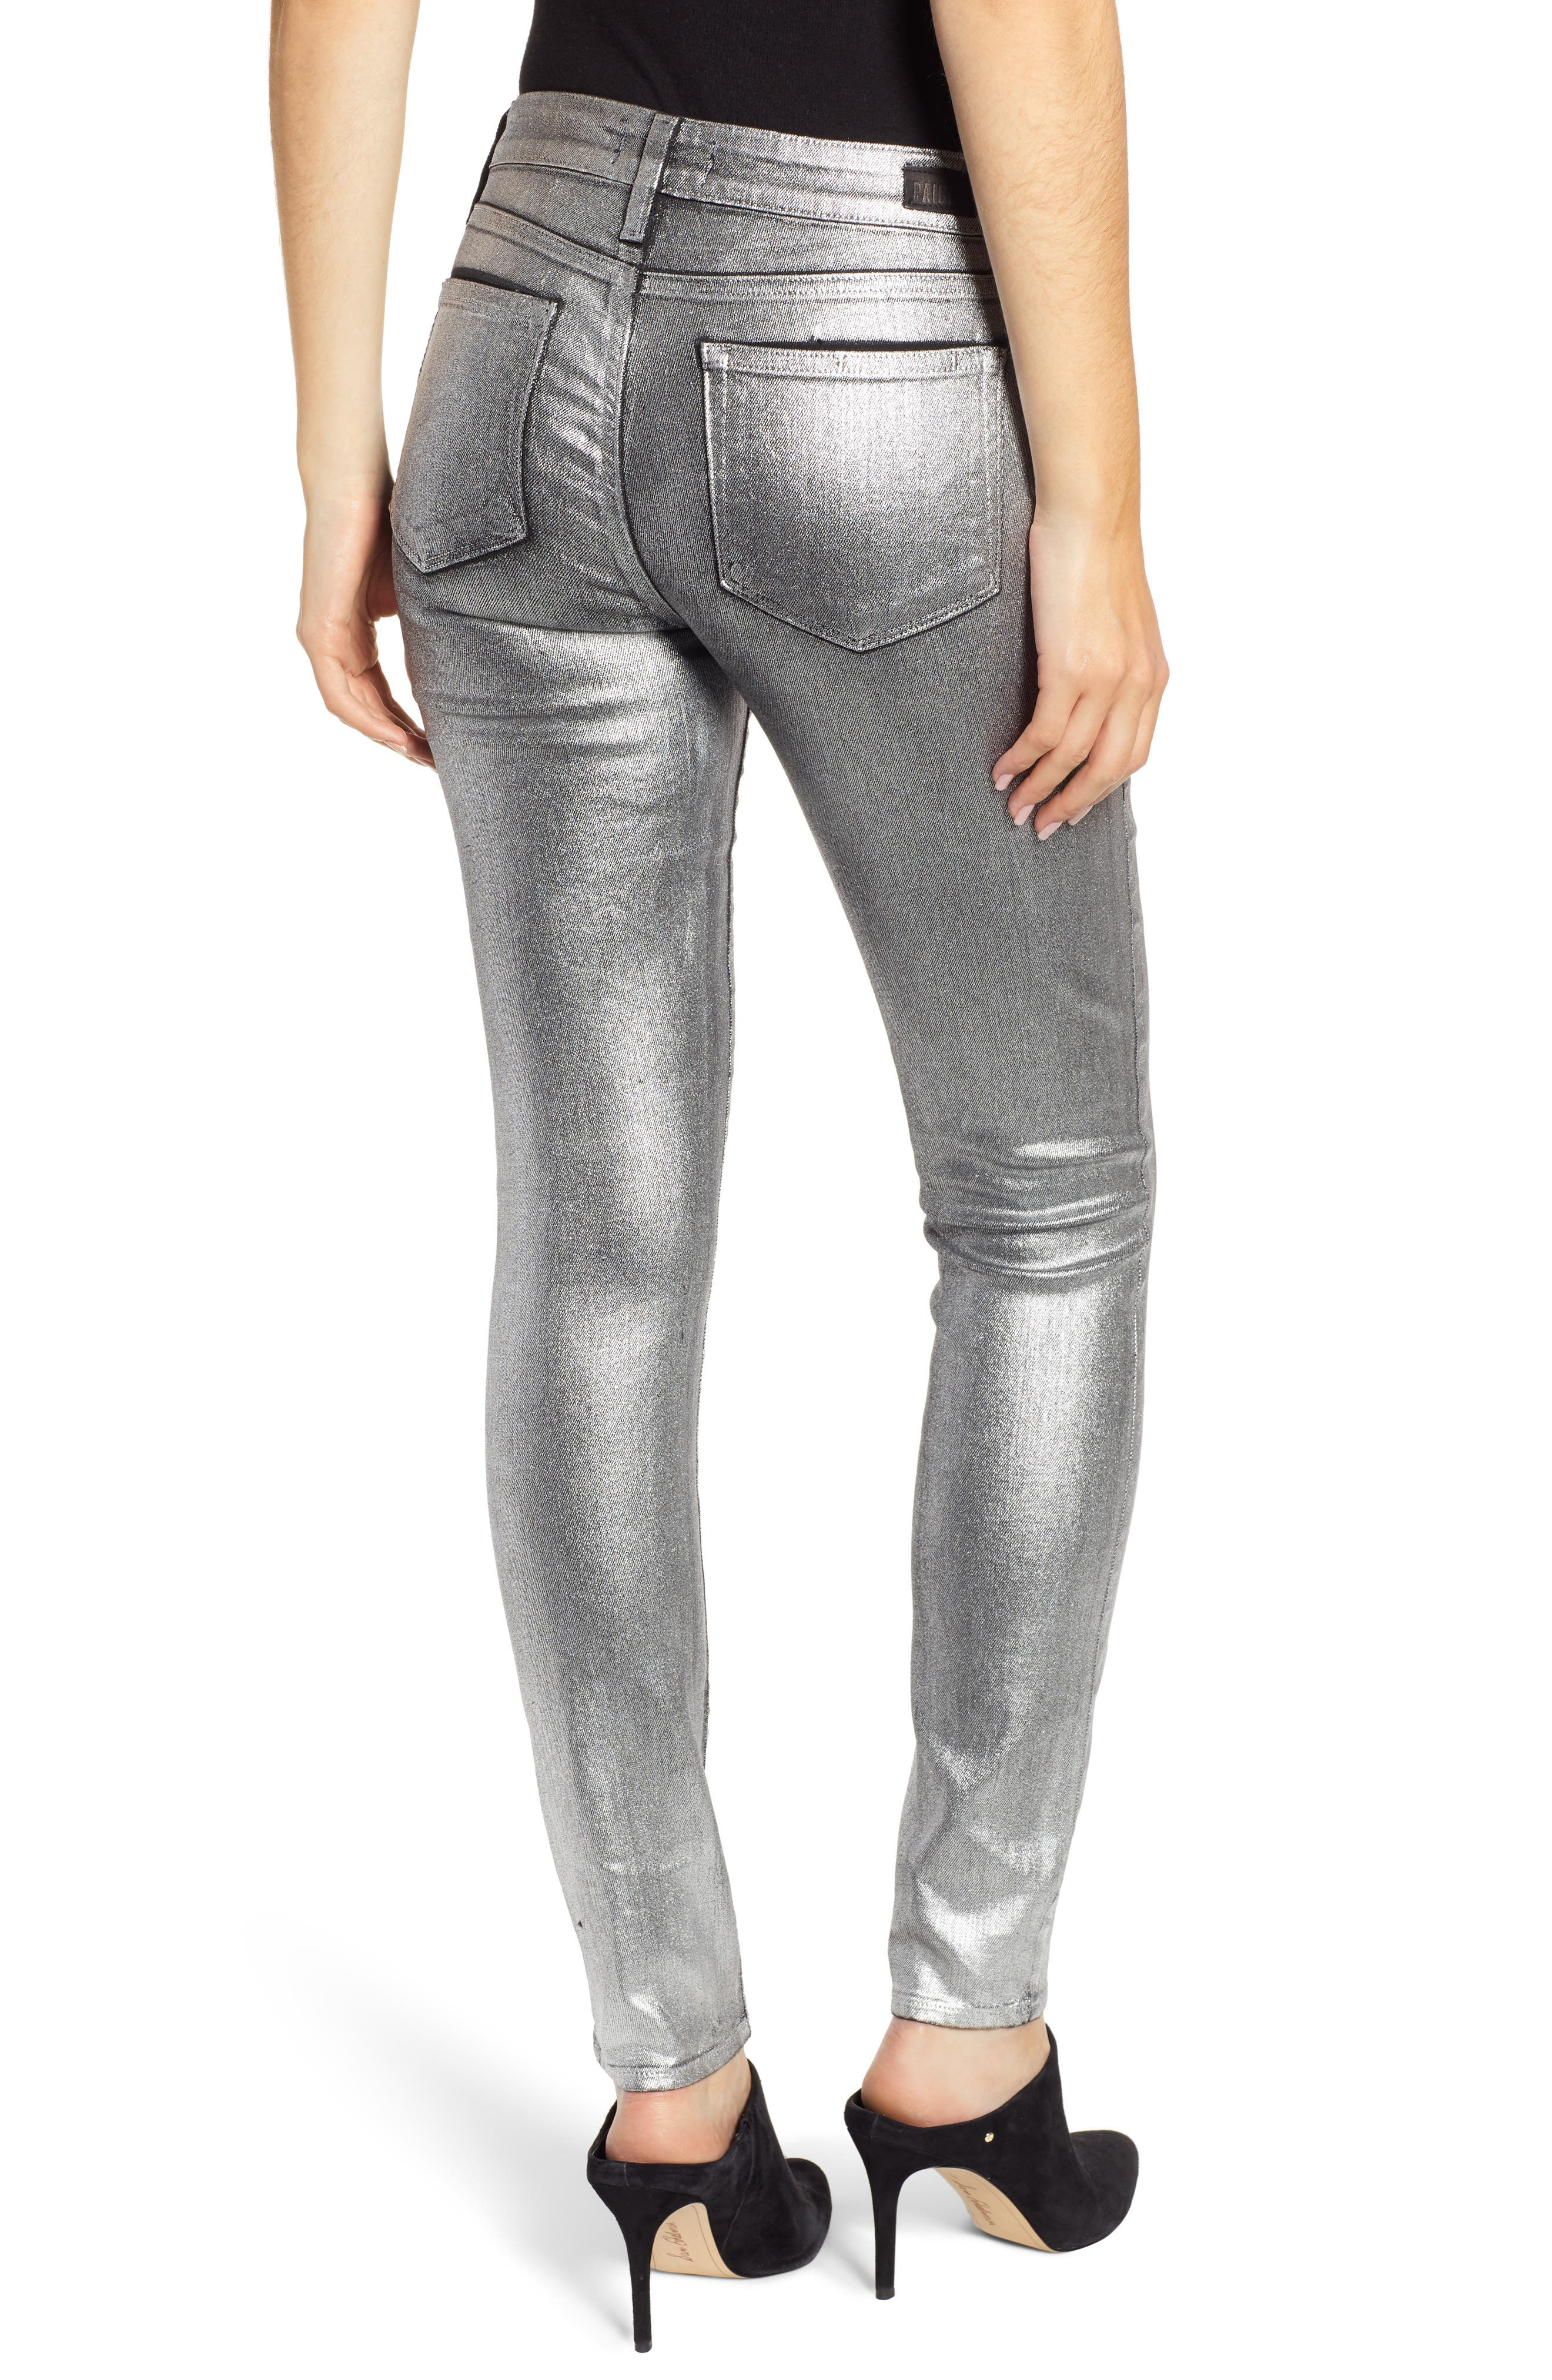 Verdugo Skinny Jeans,                             Alternate thumbnail 2, color,                             SILVER GALAXY COATING